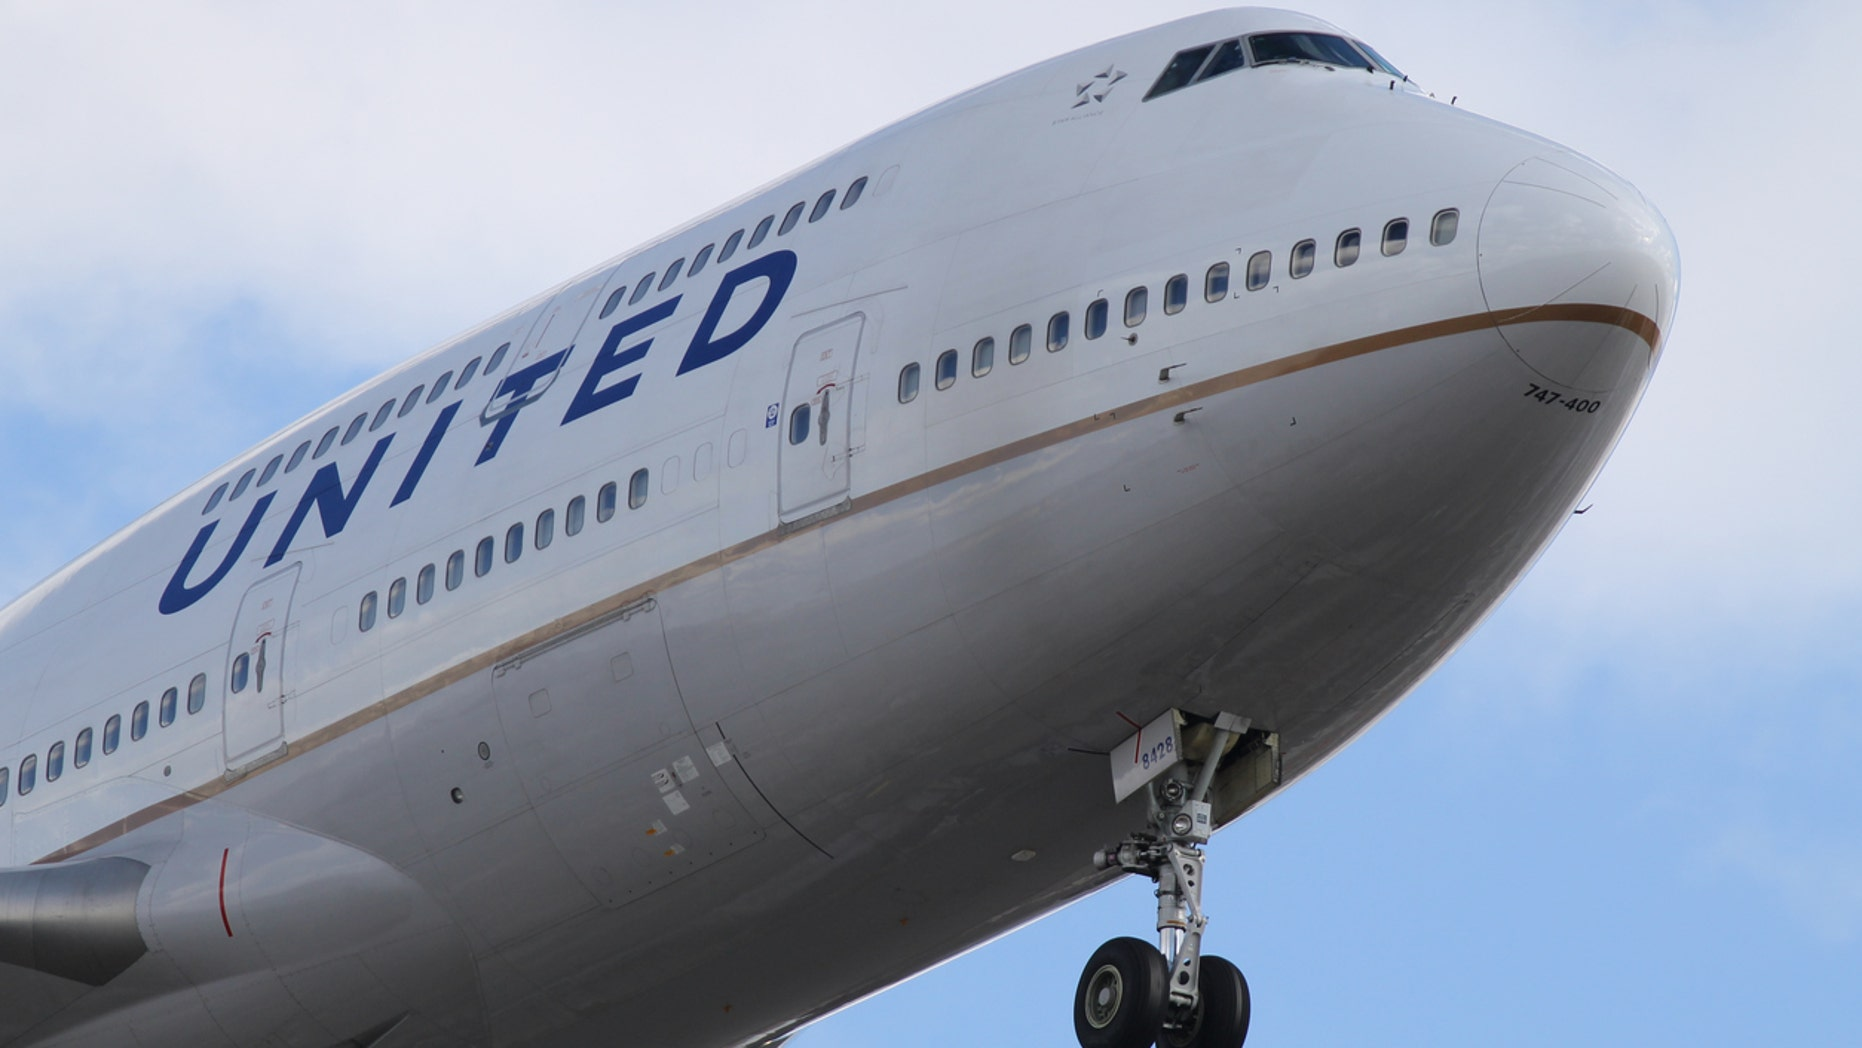 A United flight bound for Paris made an unscheduled stop in Dulles, Va., due to a passenger requiring medical assistance.